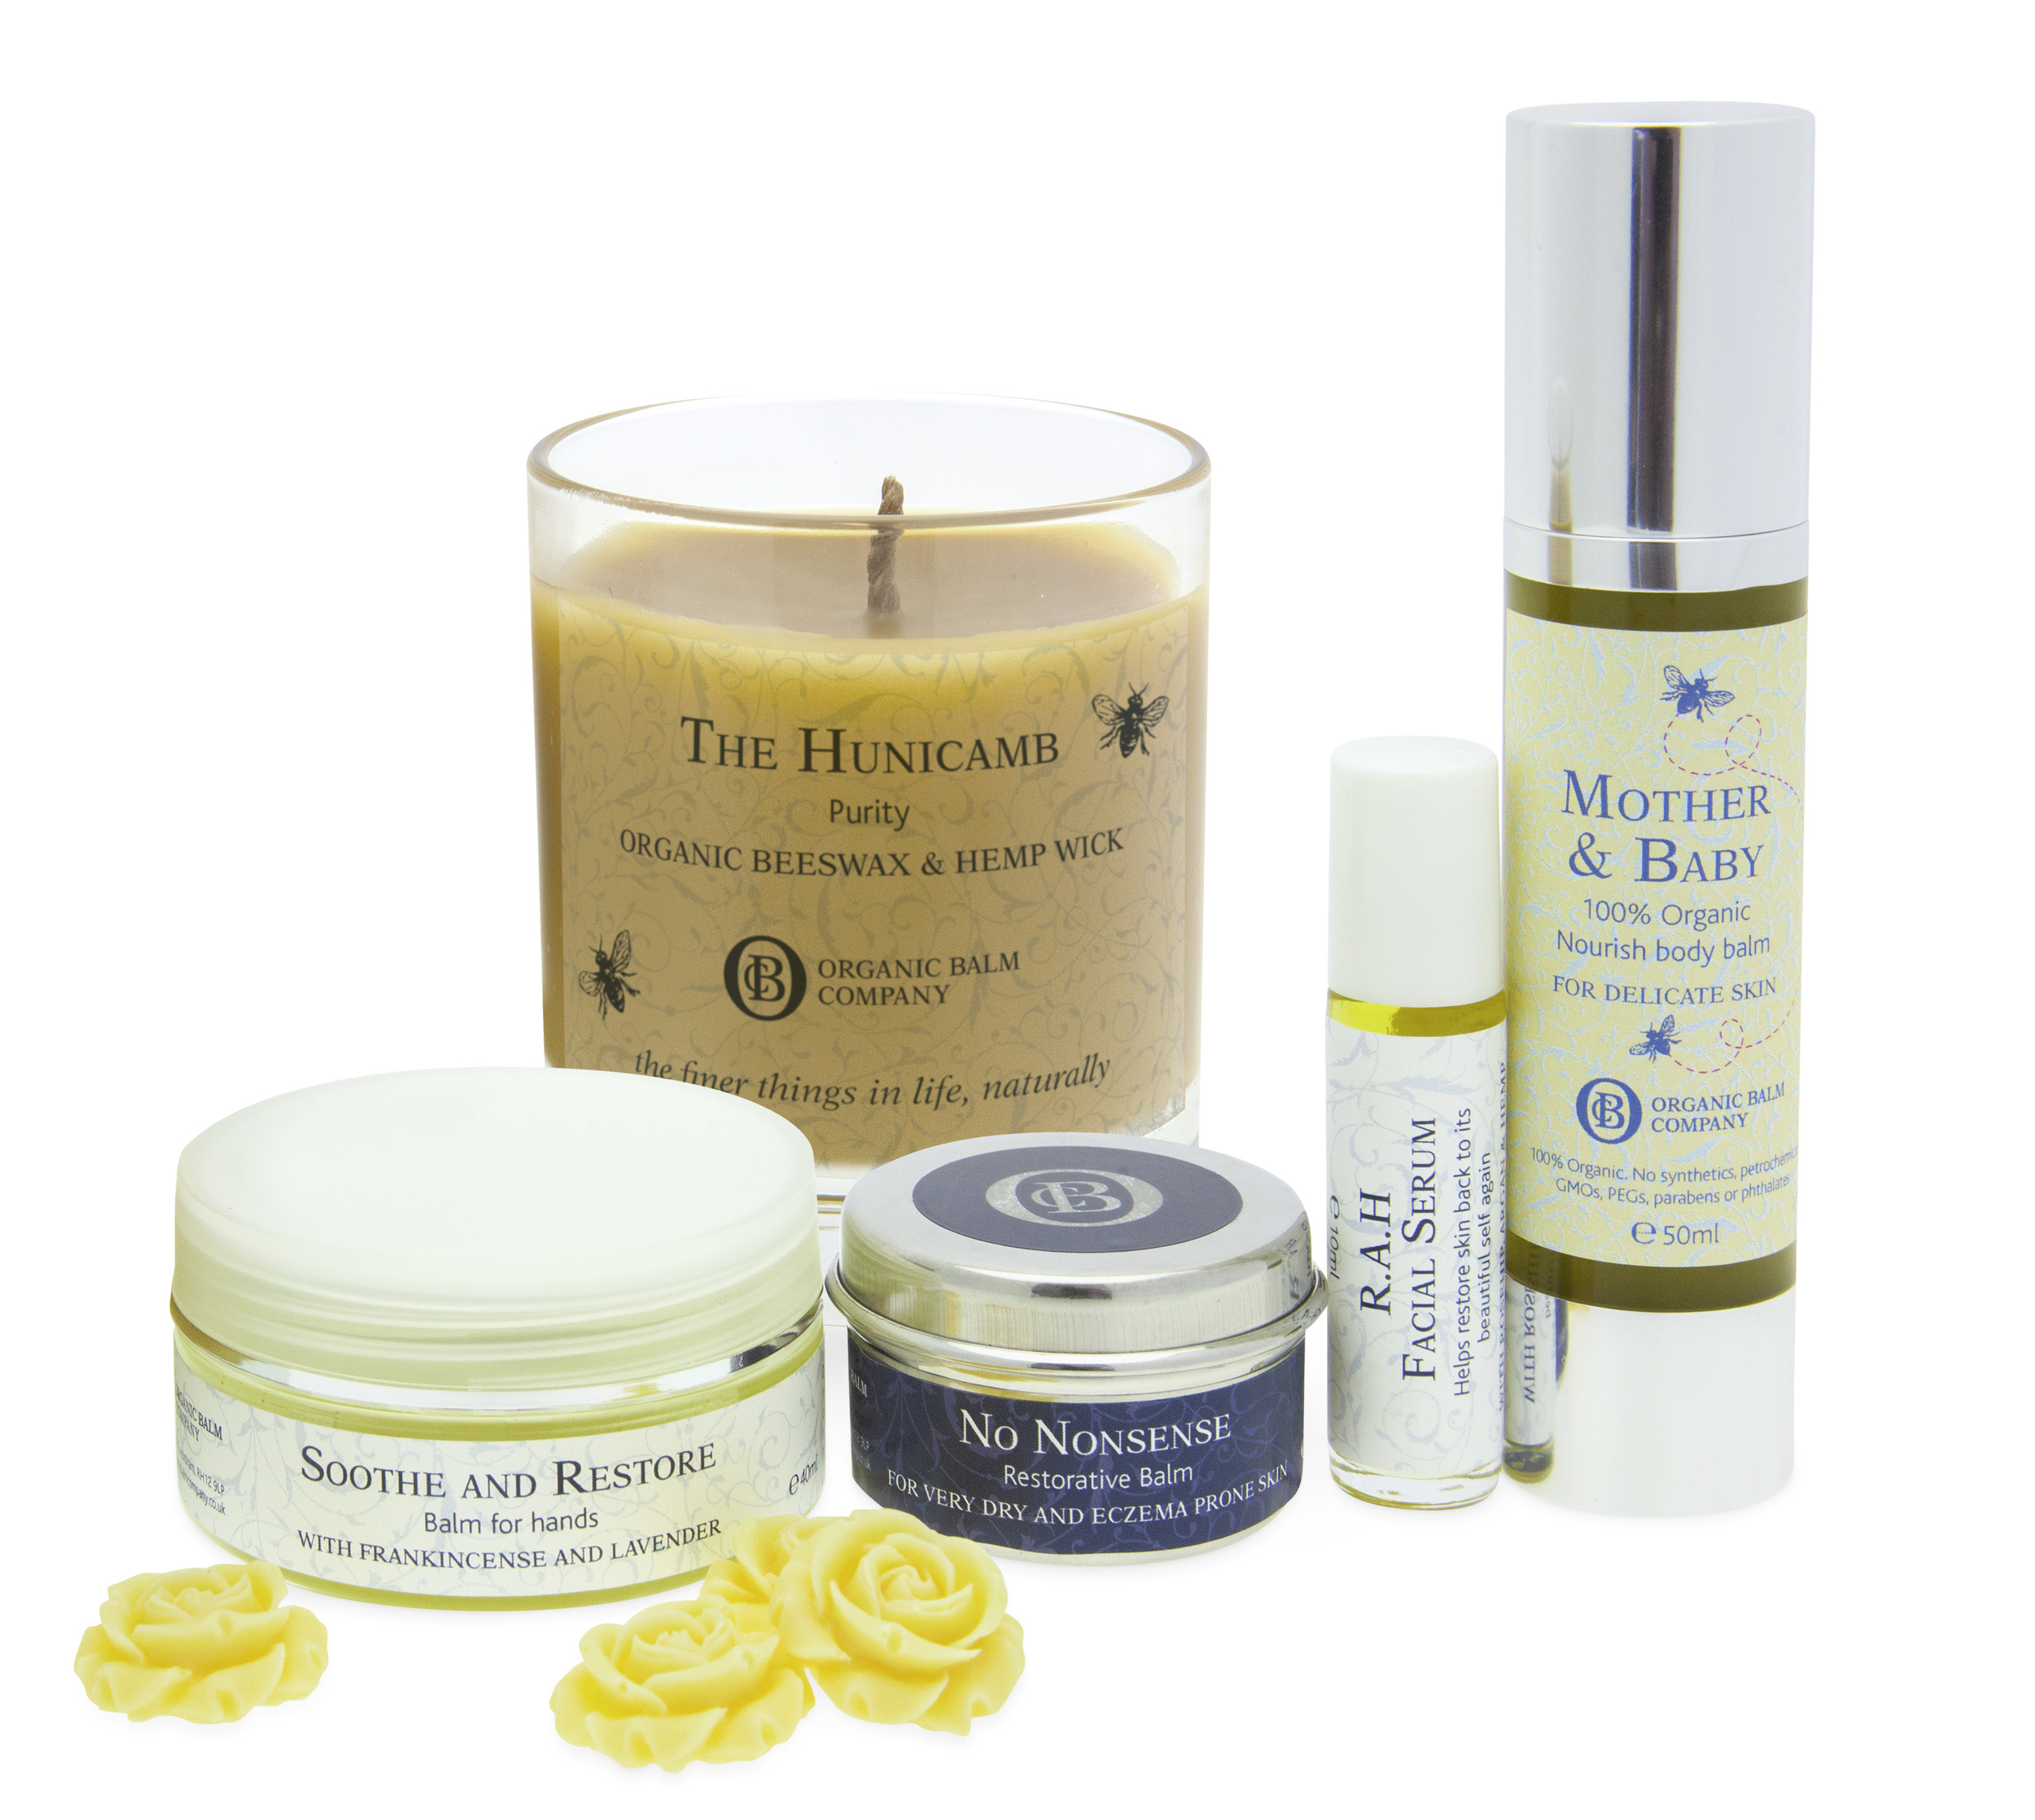 The Organic Balm Company collection